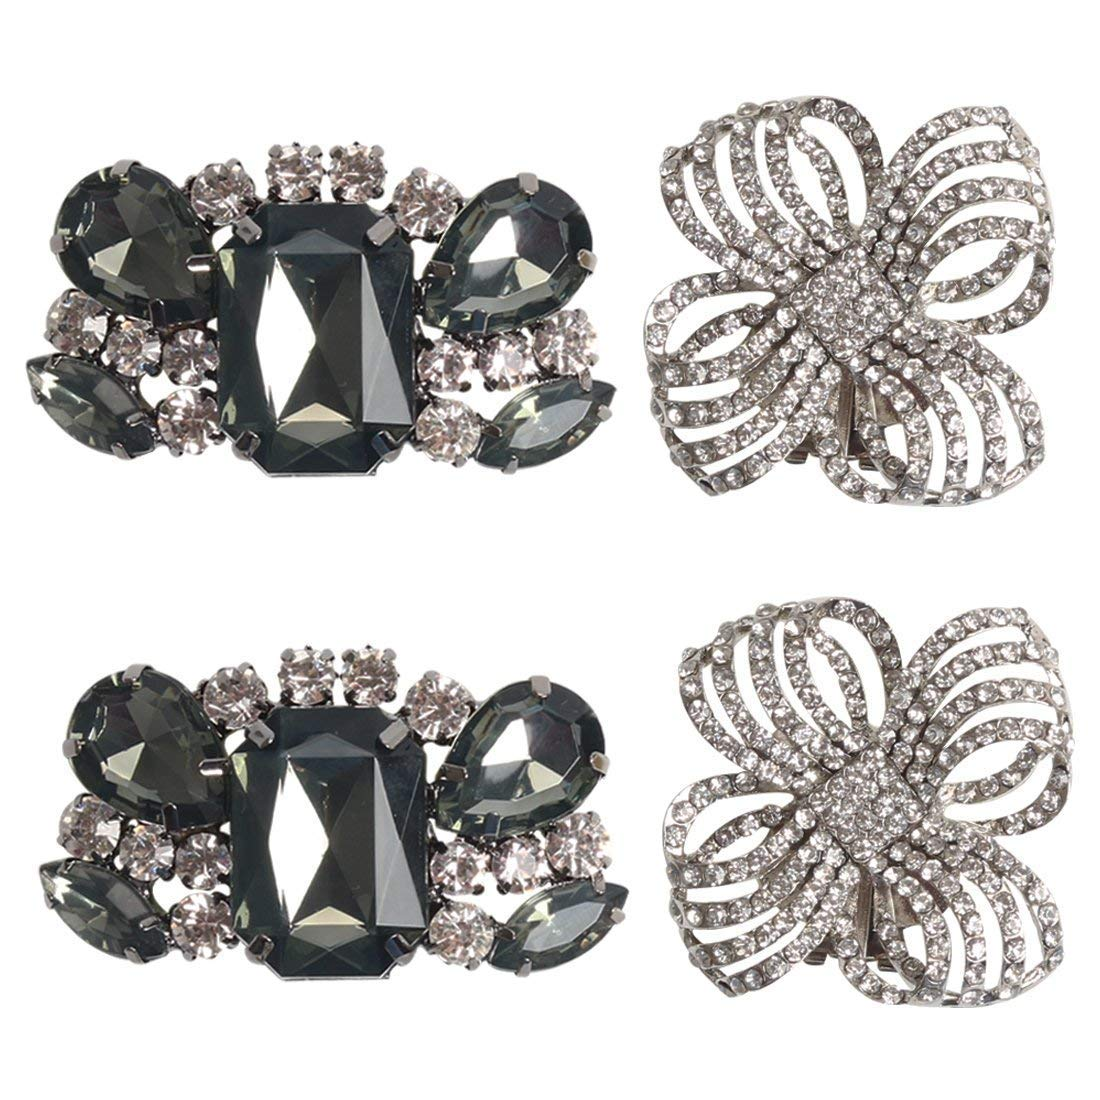 Polkar 2 Pairs Elegant Rhinestone Crystal Metal Shoe Clips Shoe Buckle for Wedding Party Decoration (color A1)